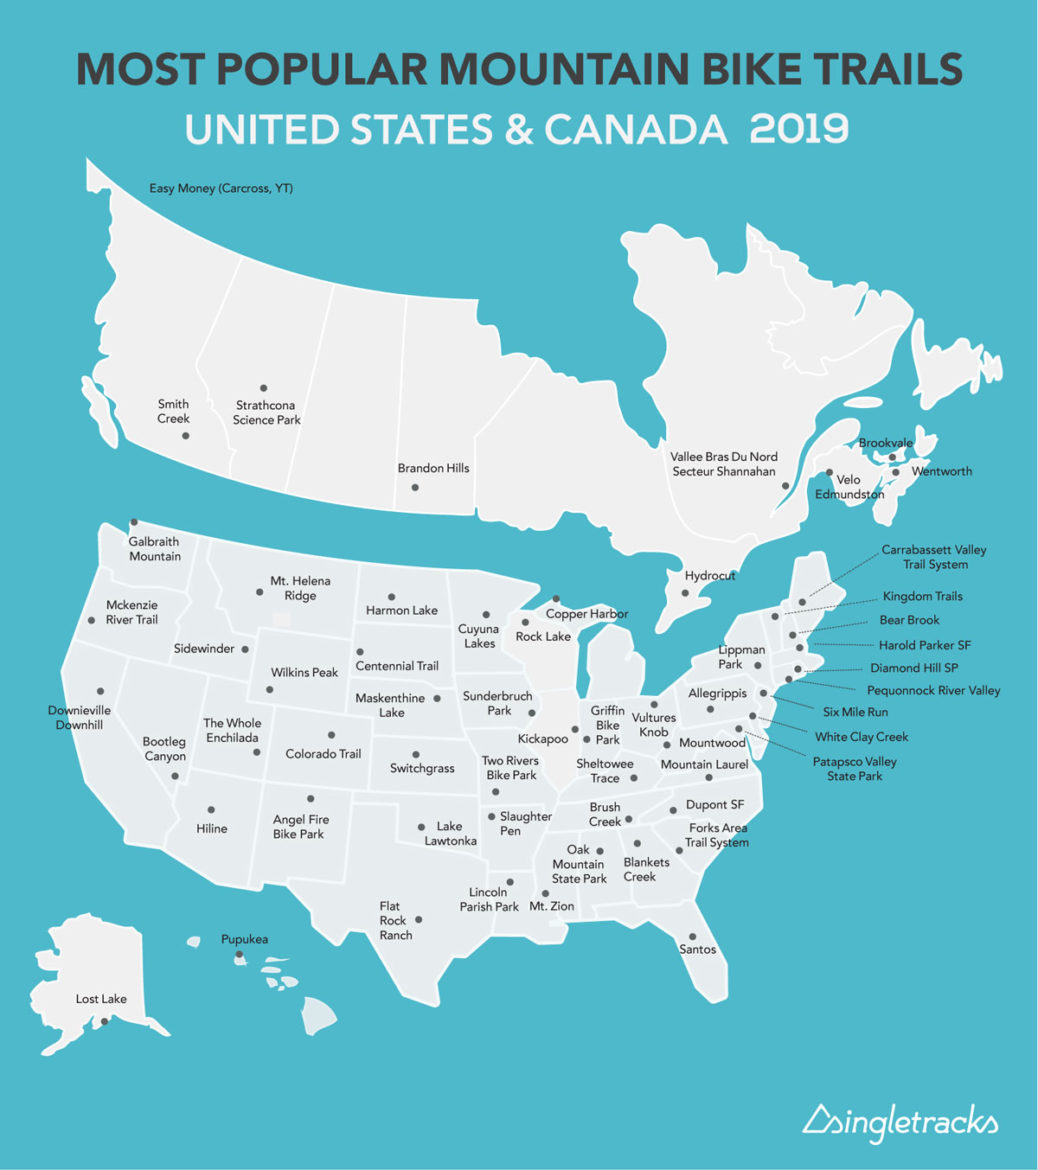 Most Popular Mountain Bike Trails in the US and Canada, State-by-State (2019) - Singletracks Mountain Bike News